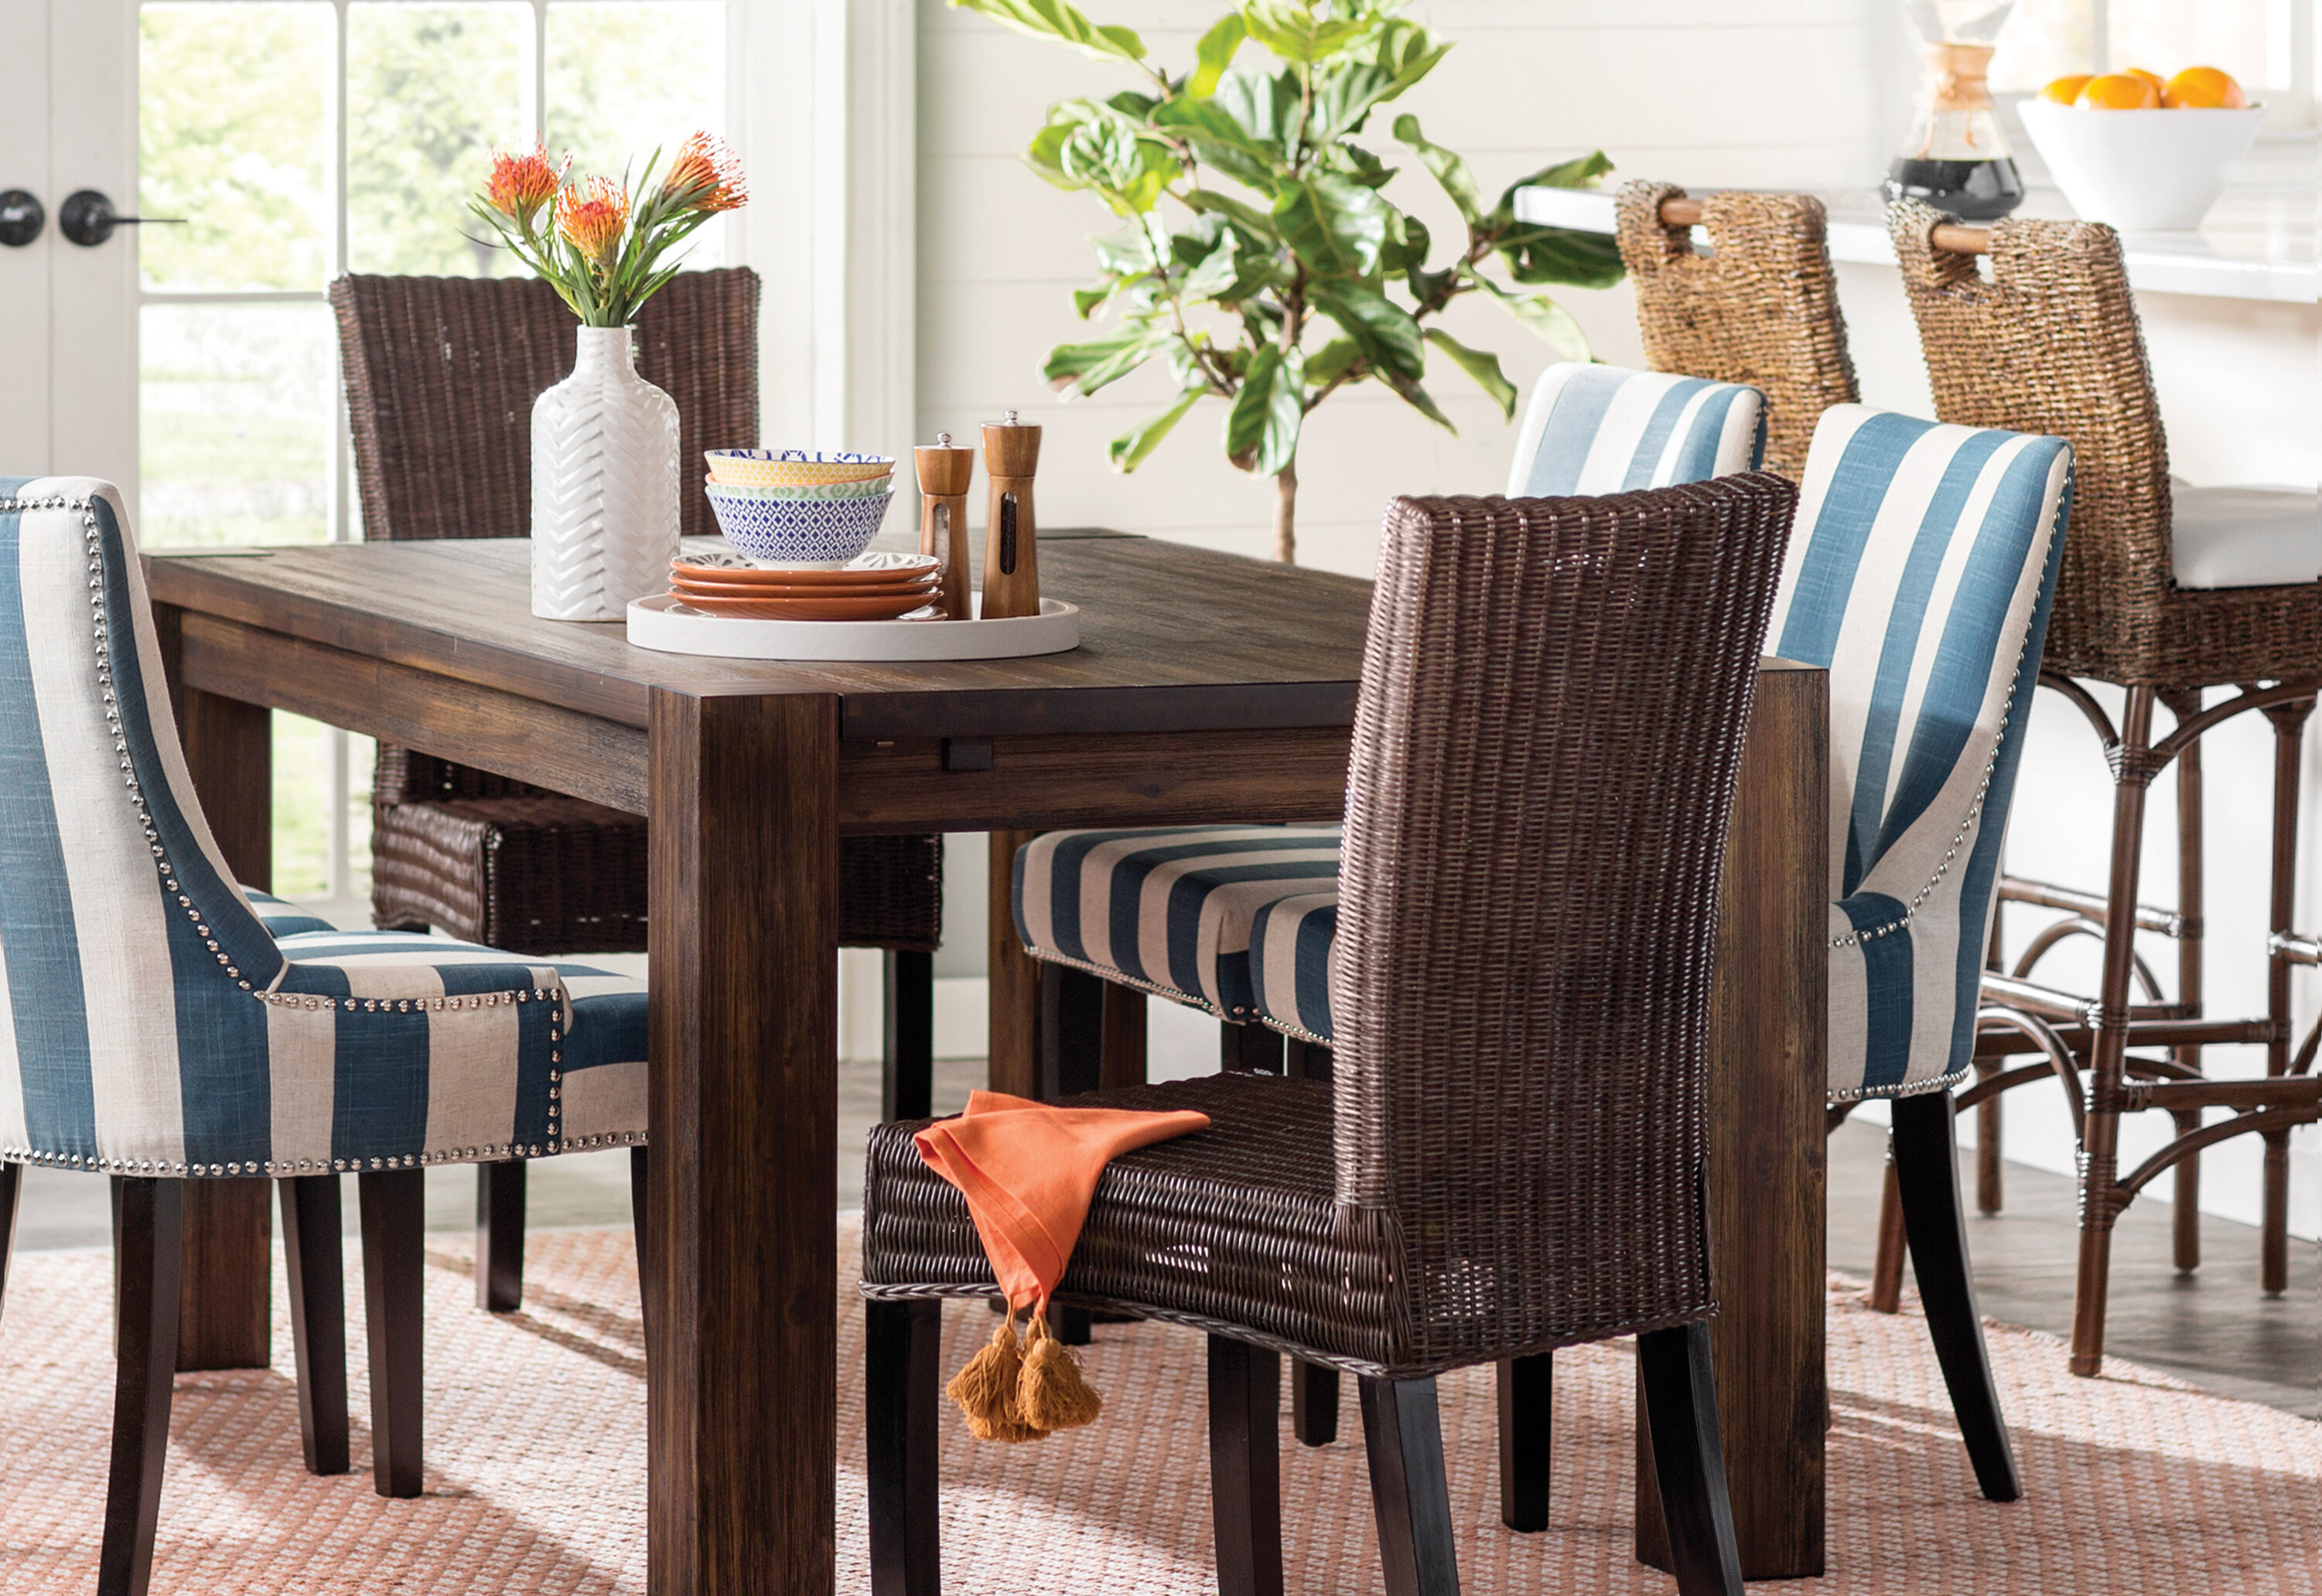 Pleasant Dining Chair Dimensions How To Choose The Right Size Wayfair Andrewgaddart Wooden Chair Designs For Living Room Andrewgaddartcom